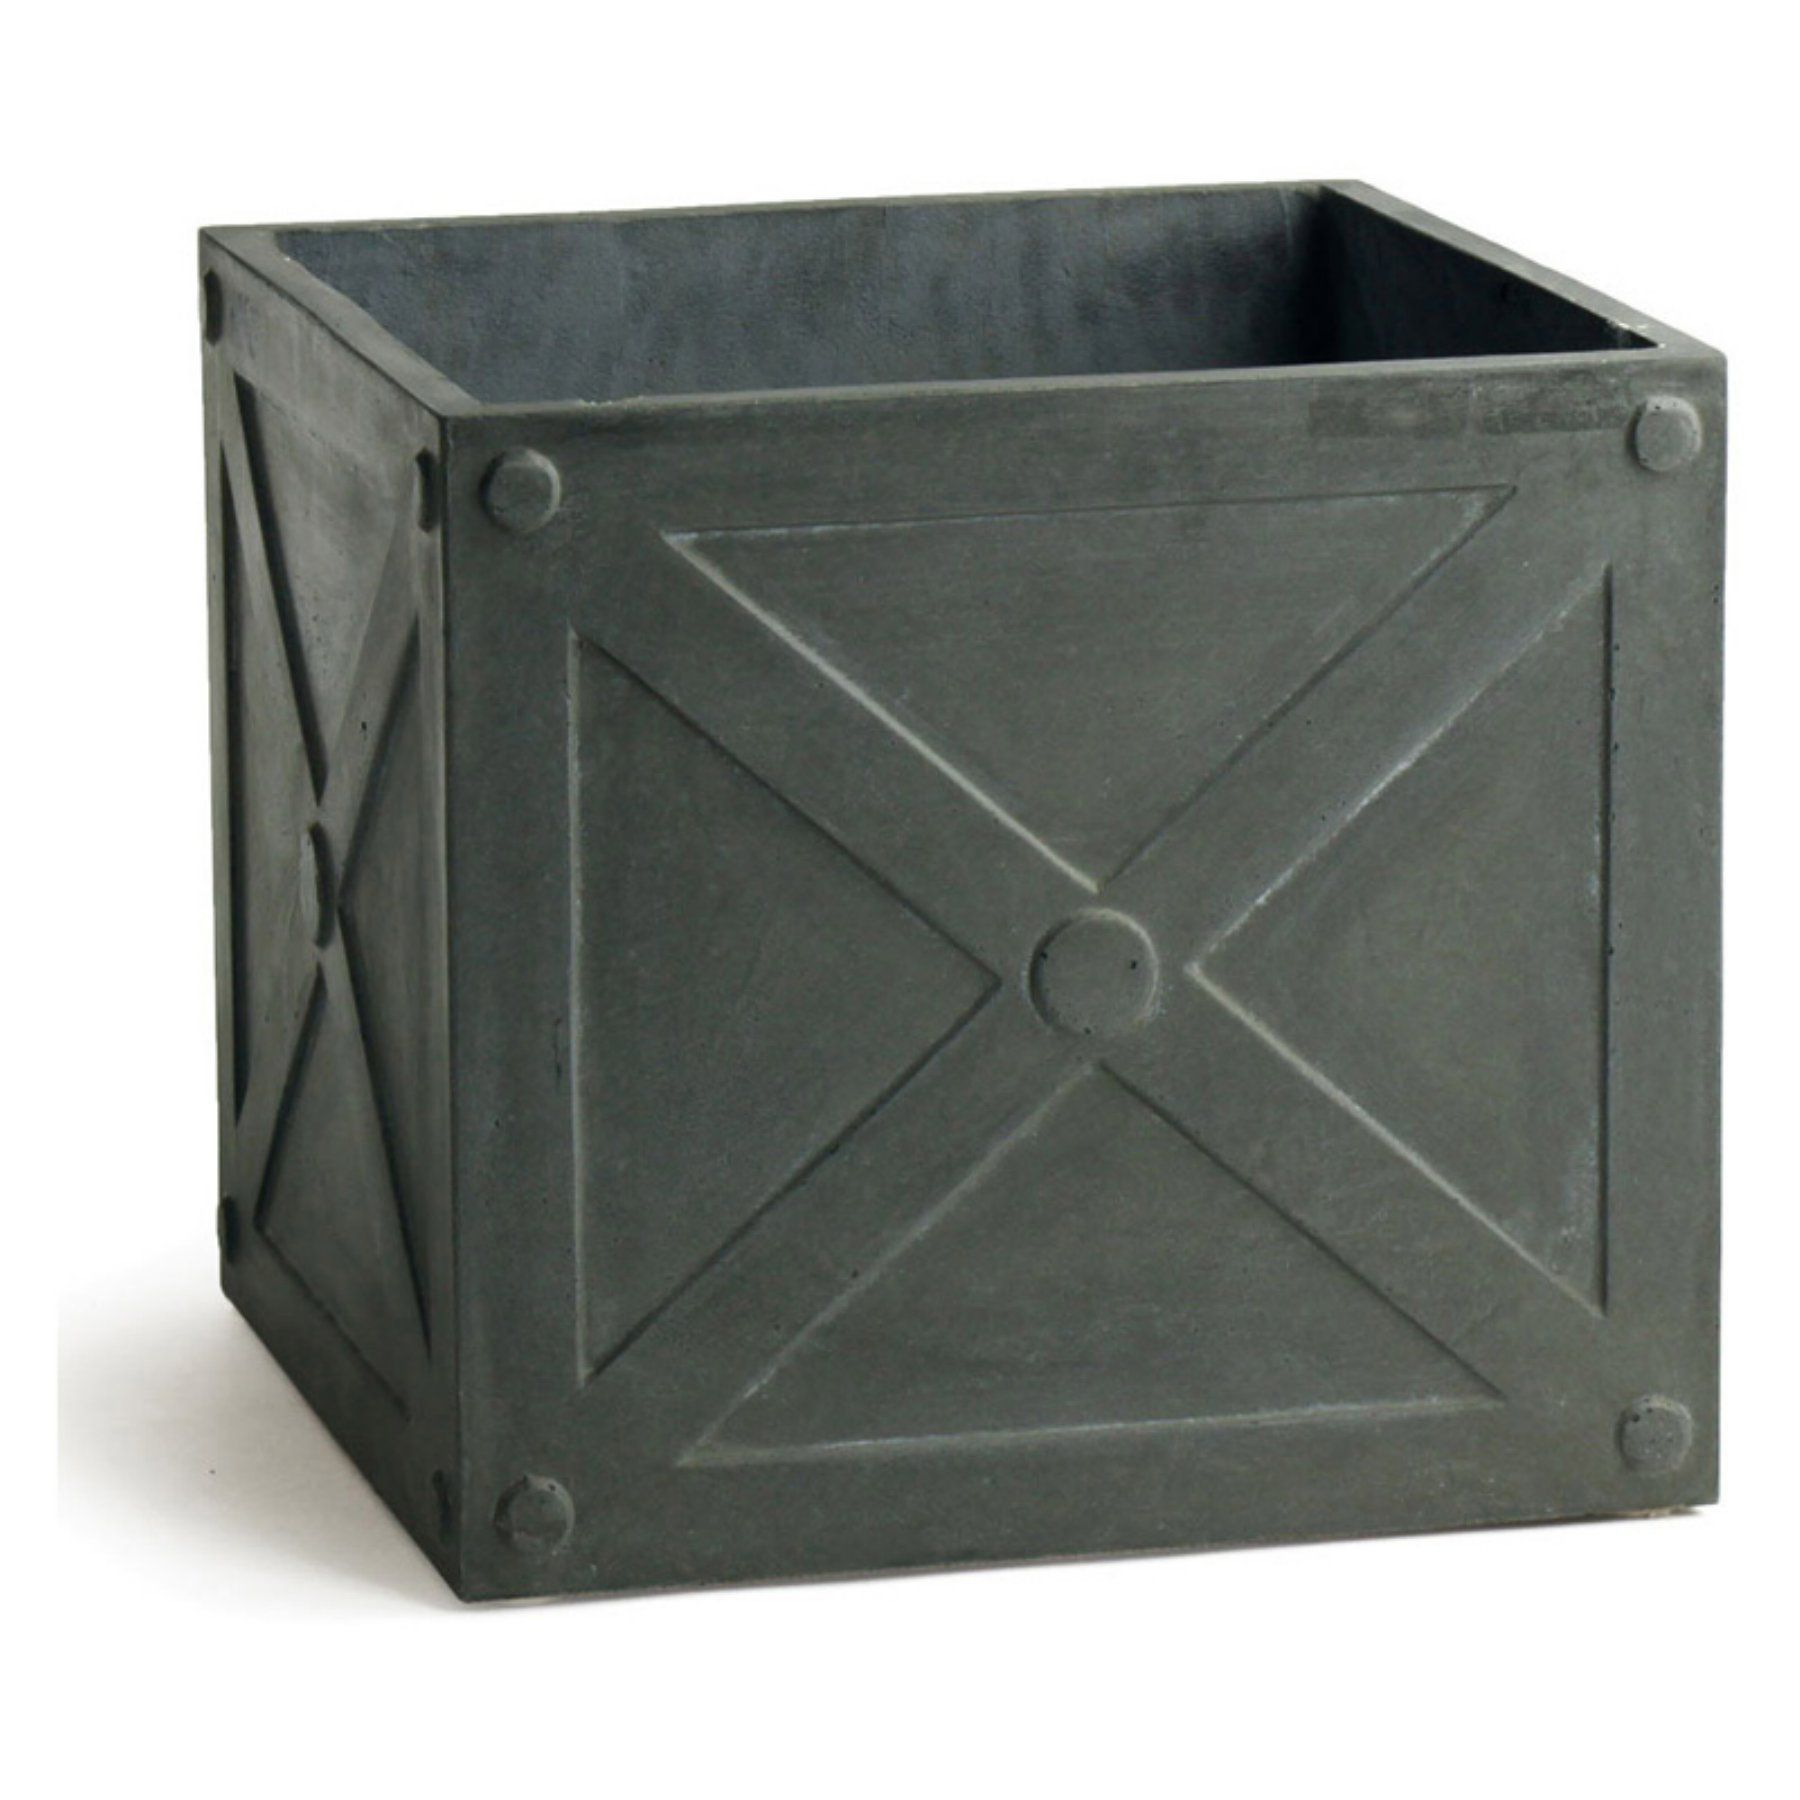 Napa Home and Garden Fiberclay Box Planter (With images